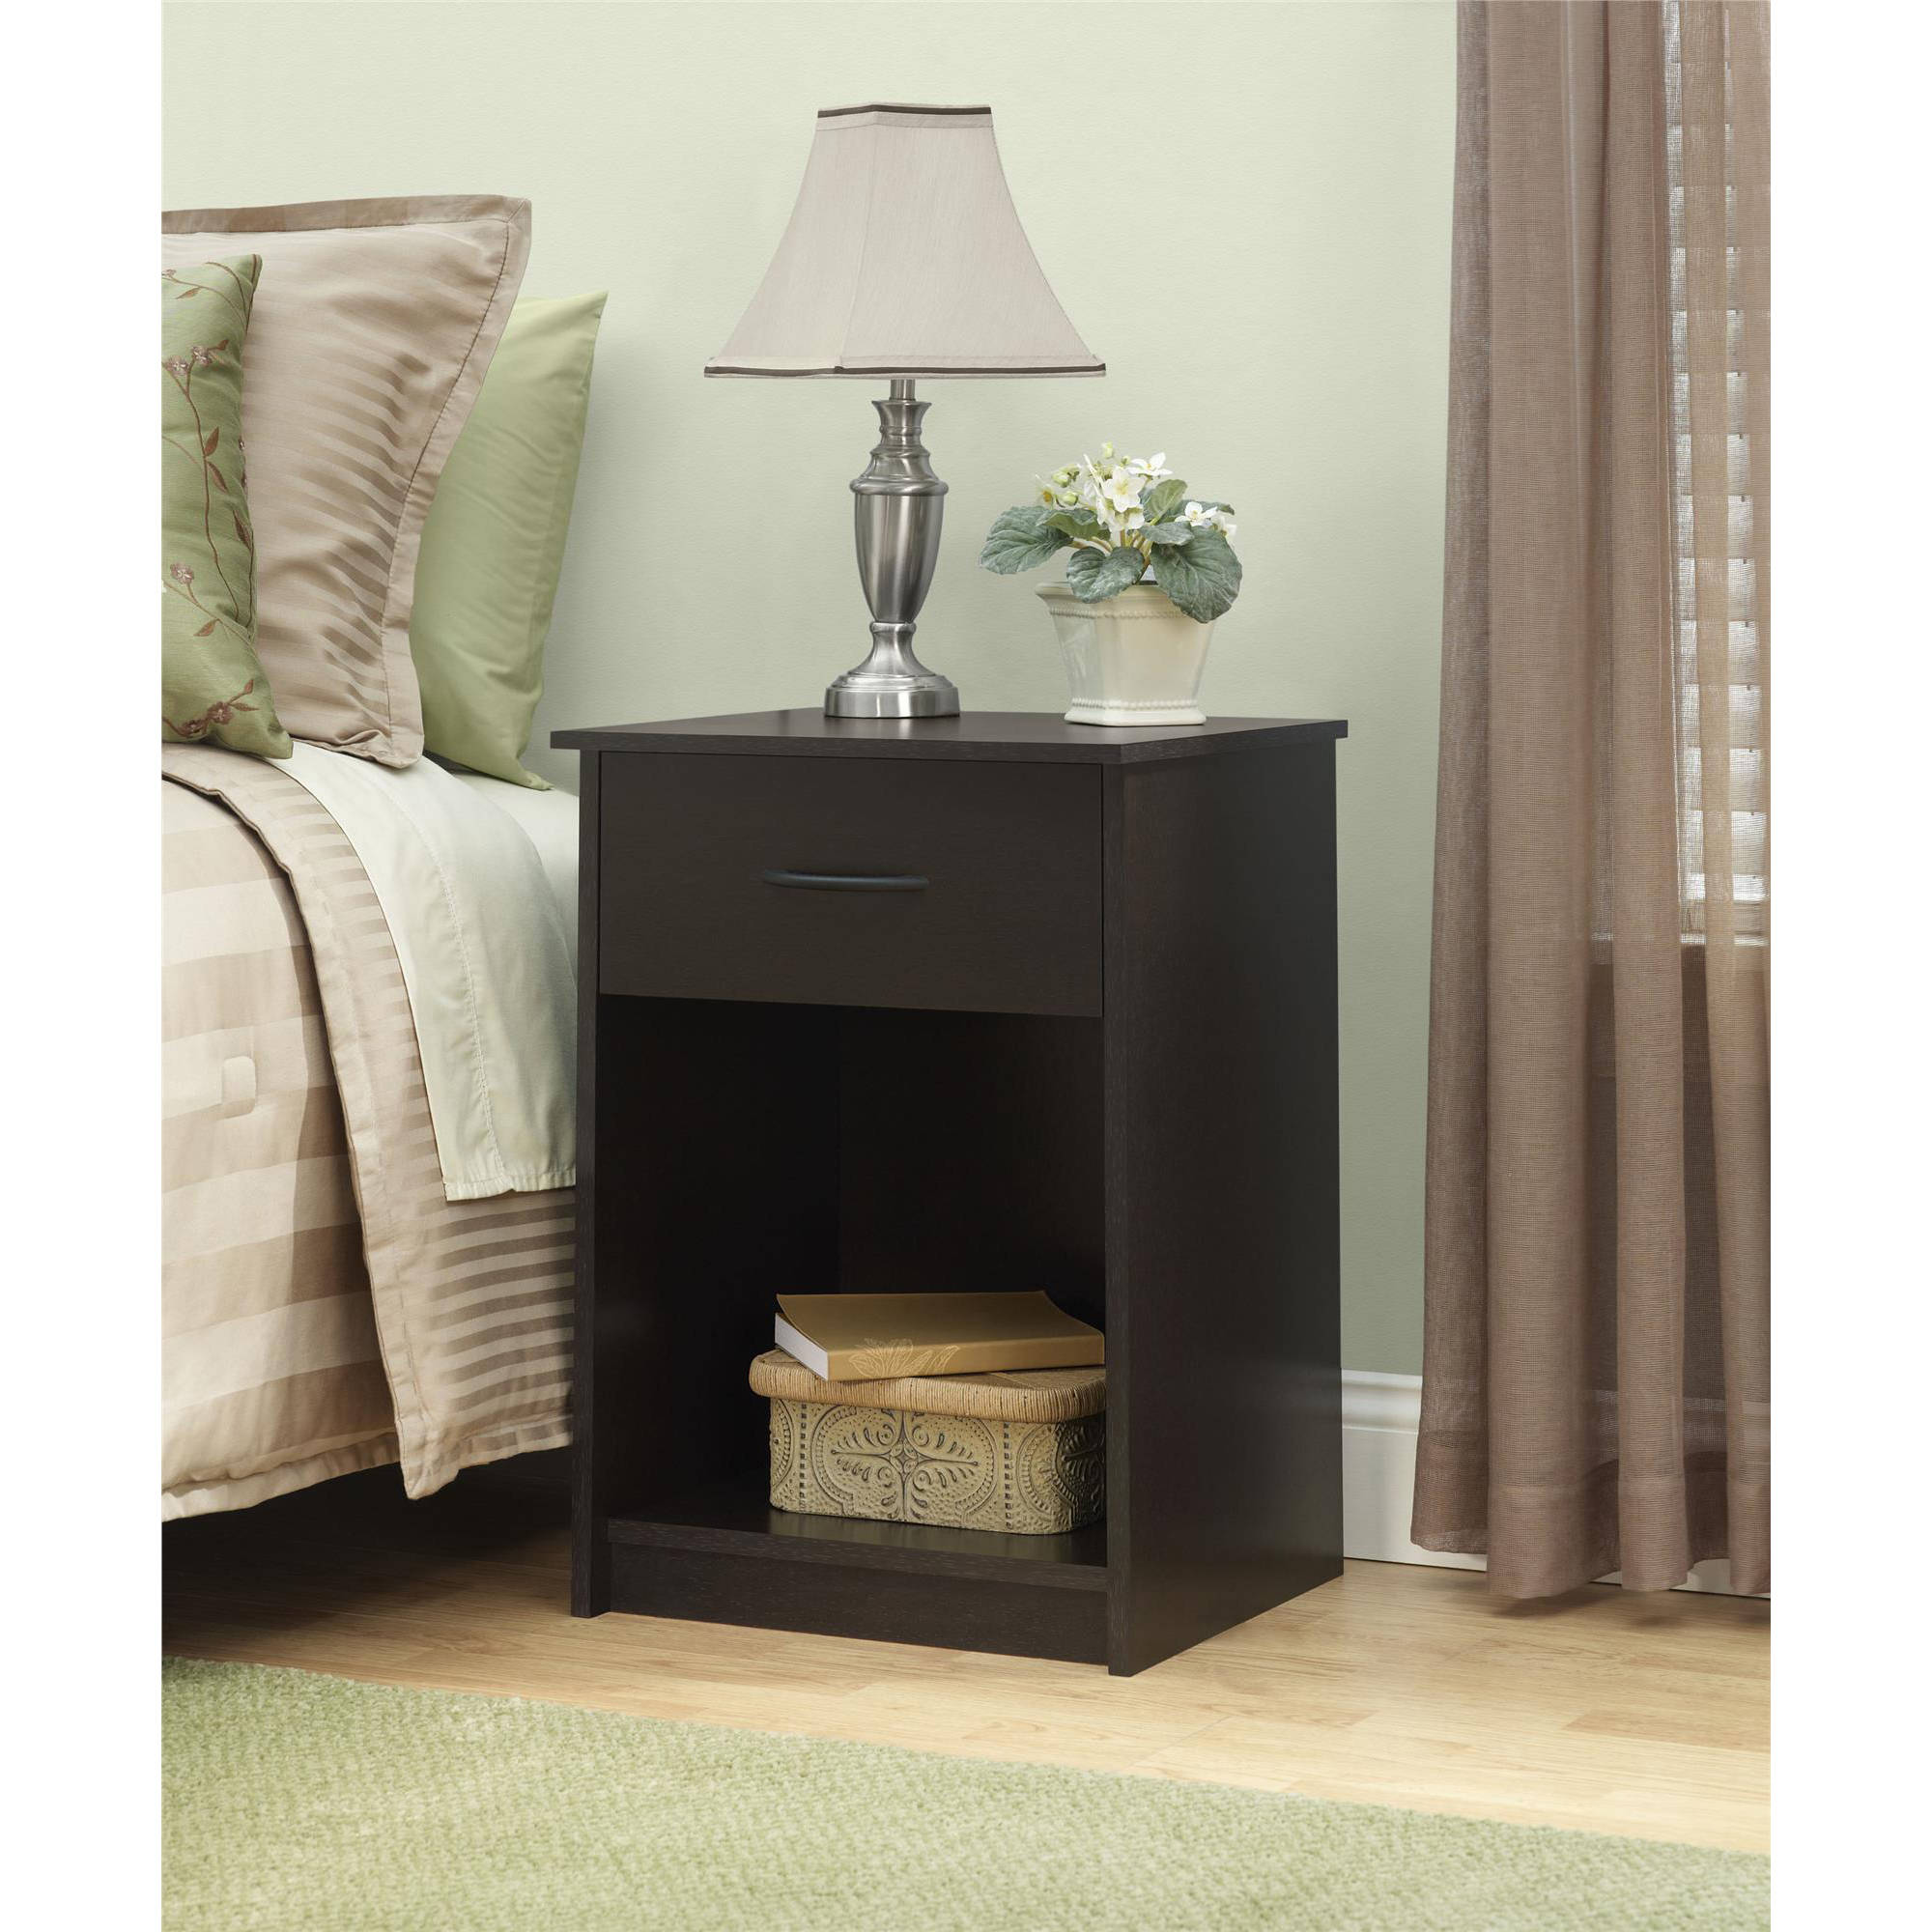 mainstays 1 drawer nightstand end table espresso walmart com rh walmart com